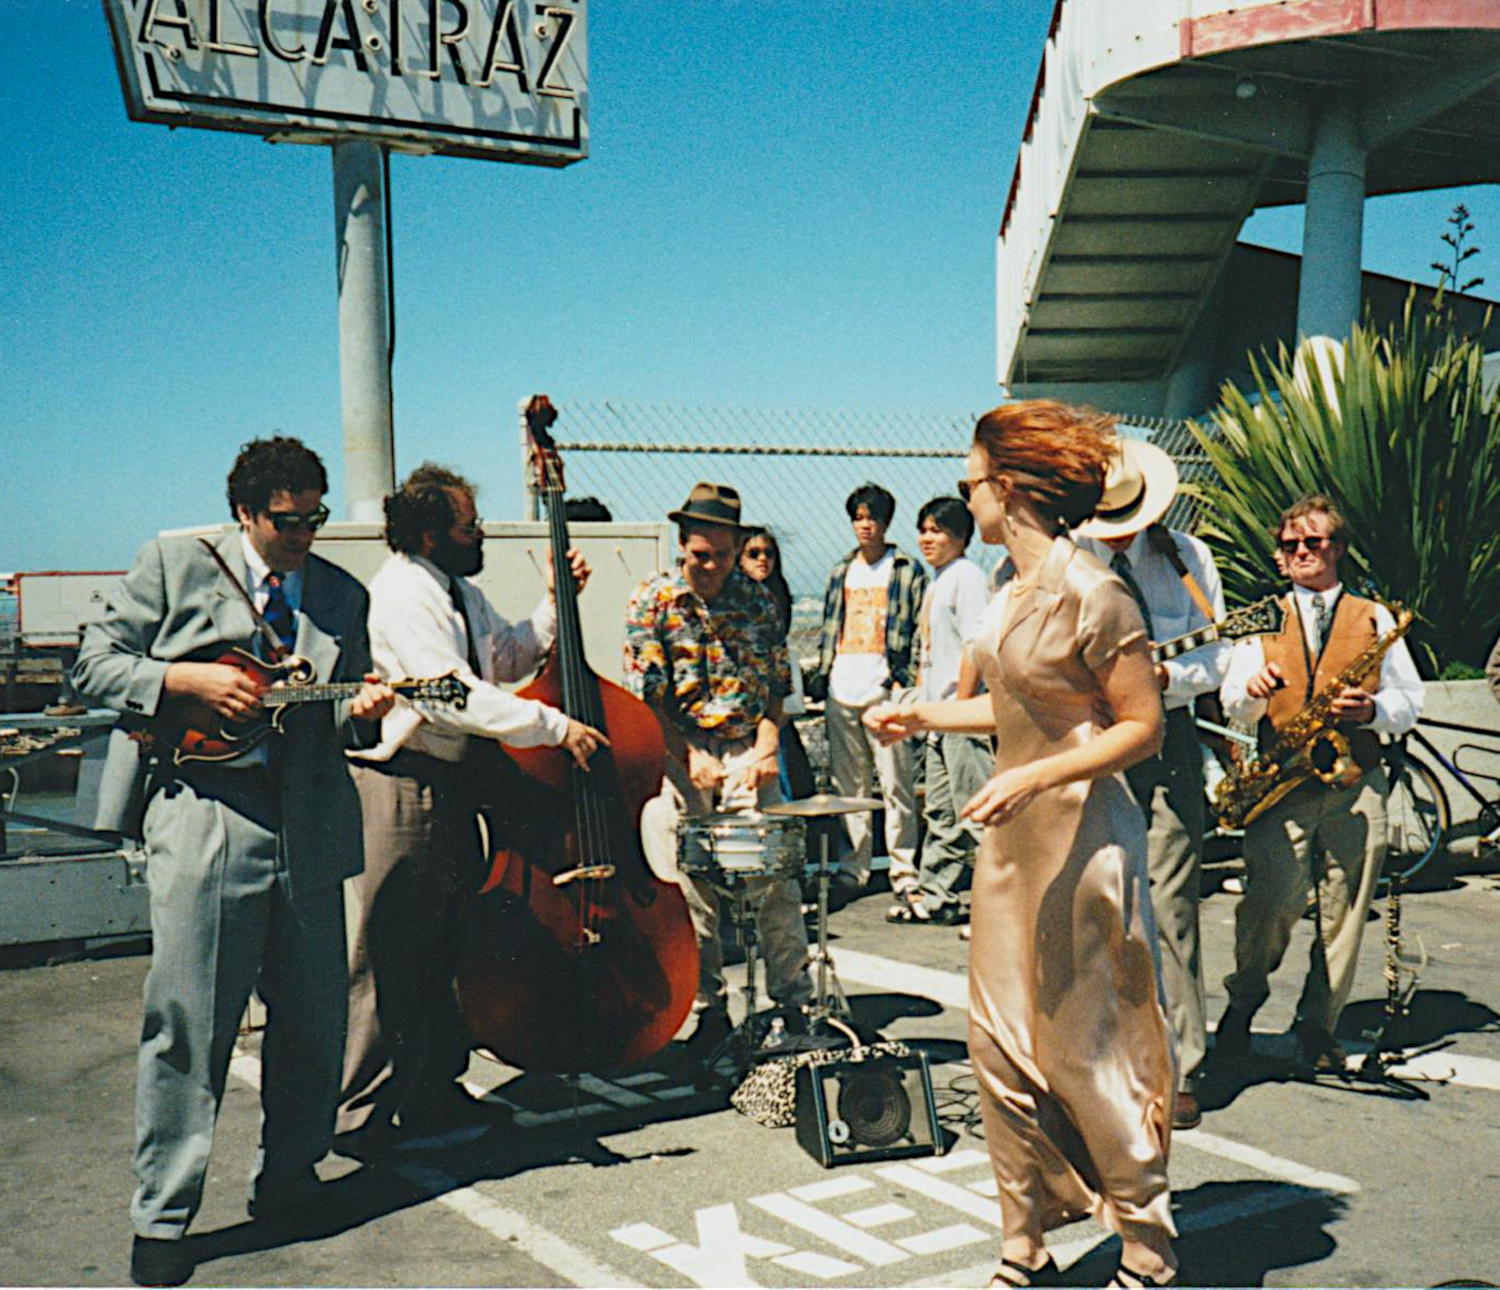 CC_SF_Pier 39 July 4_Busk2.jpg